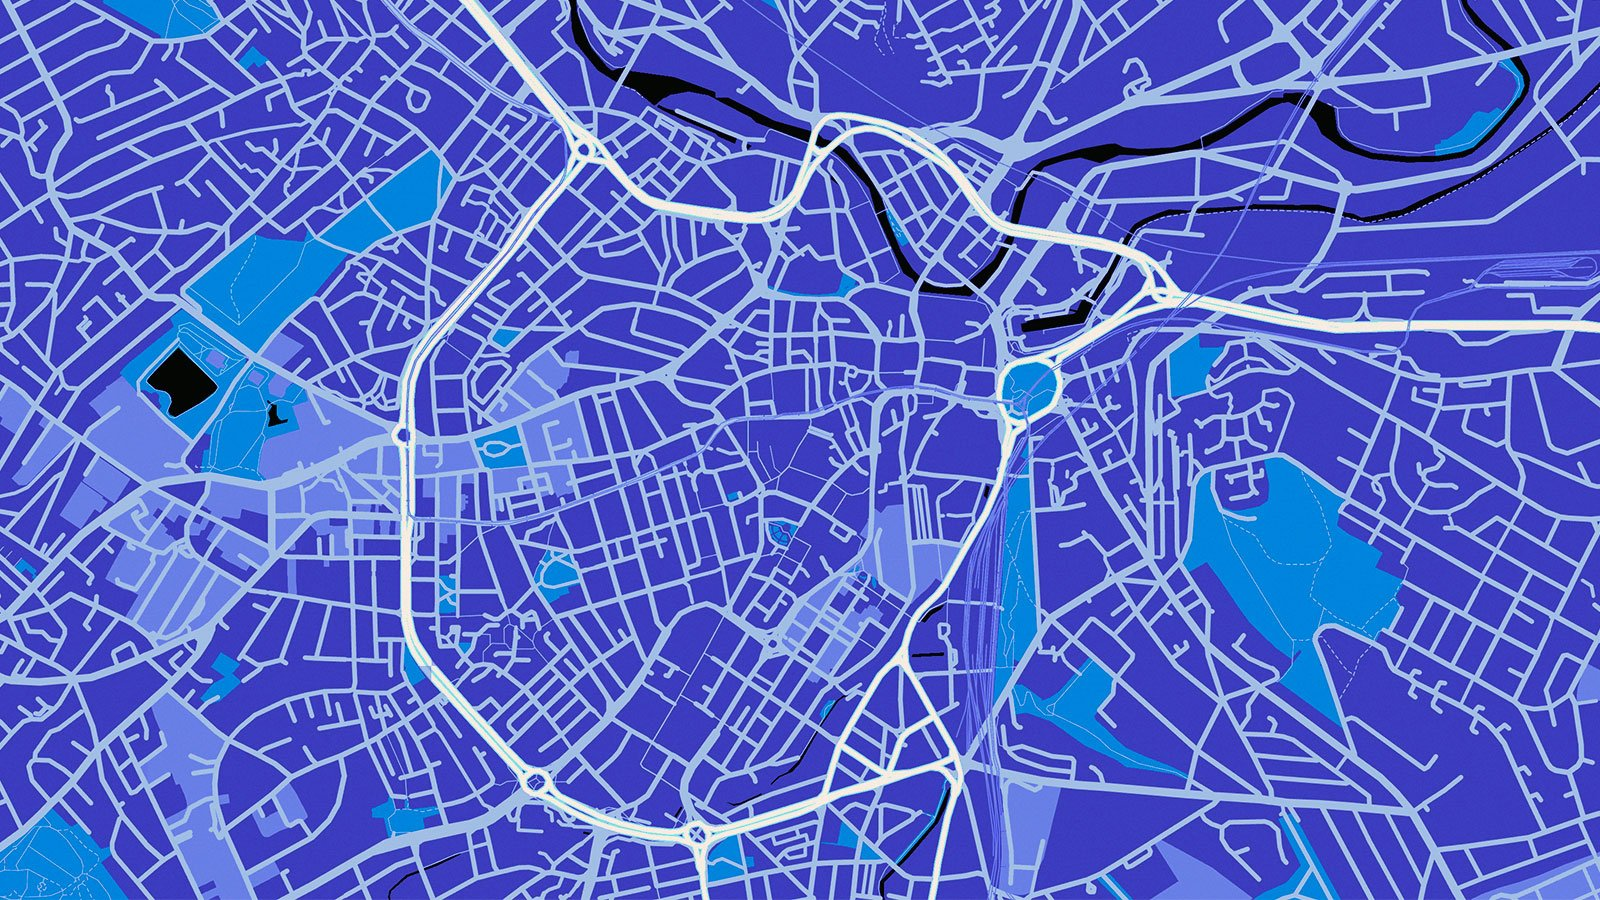 Map of Sheffield City Centre